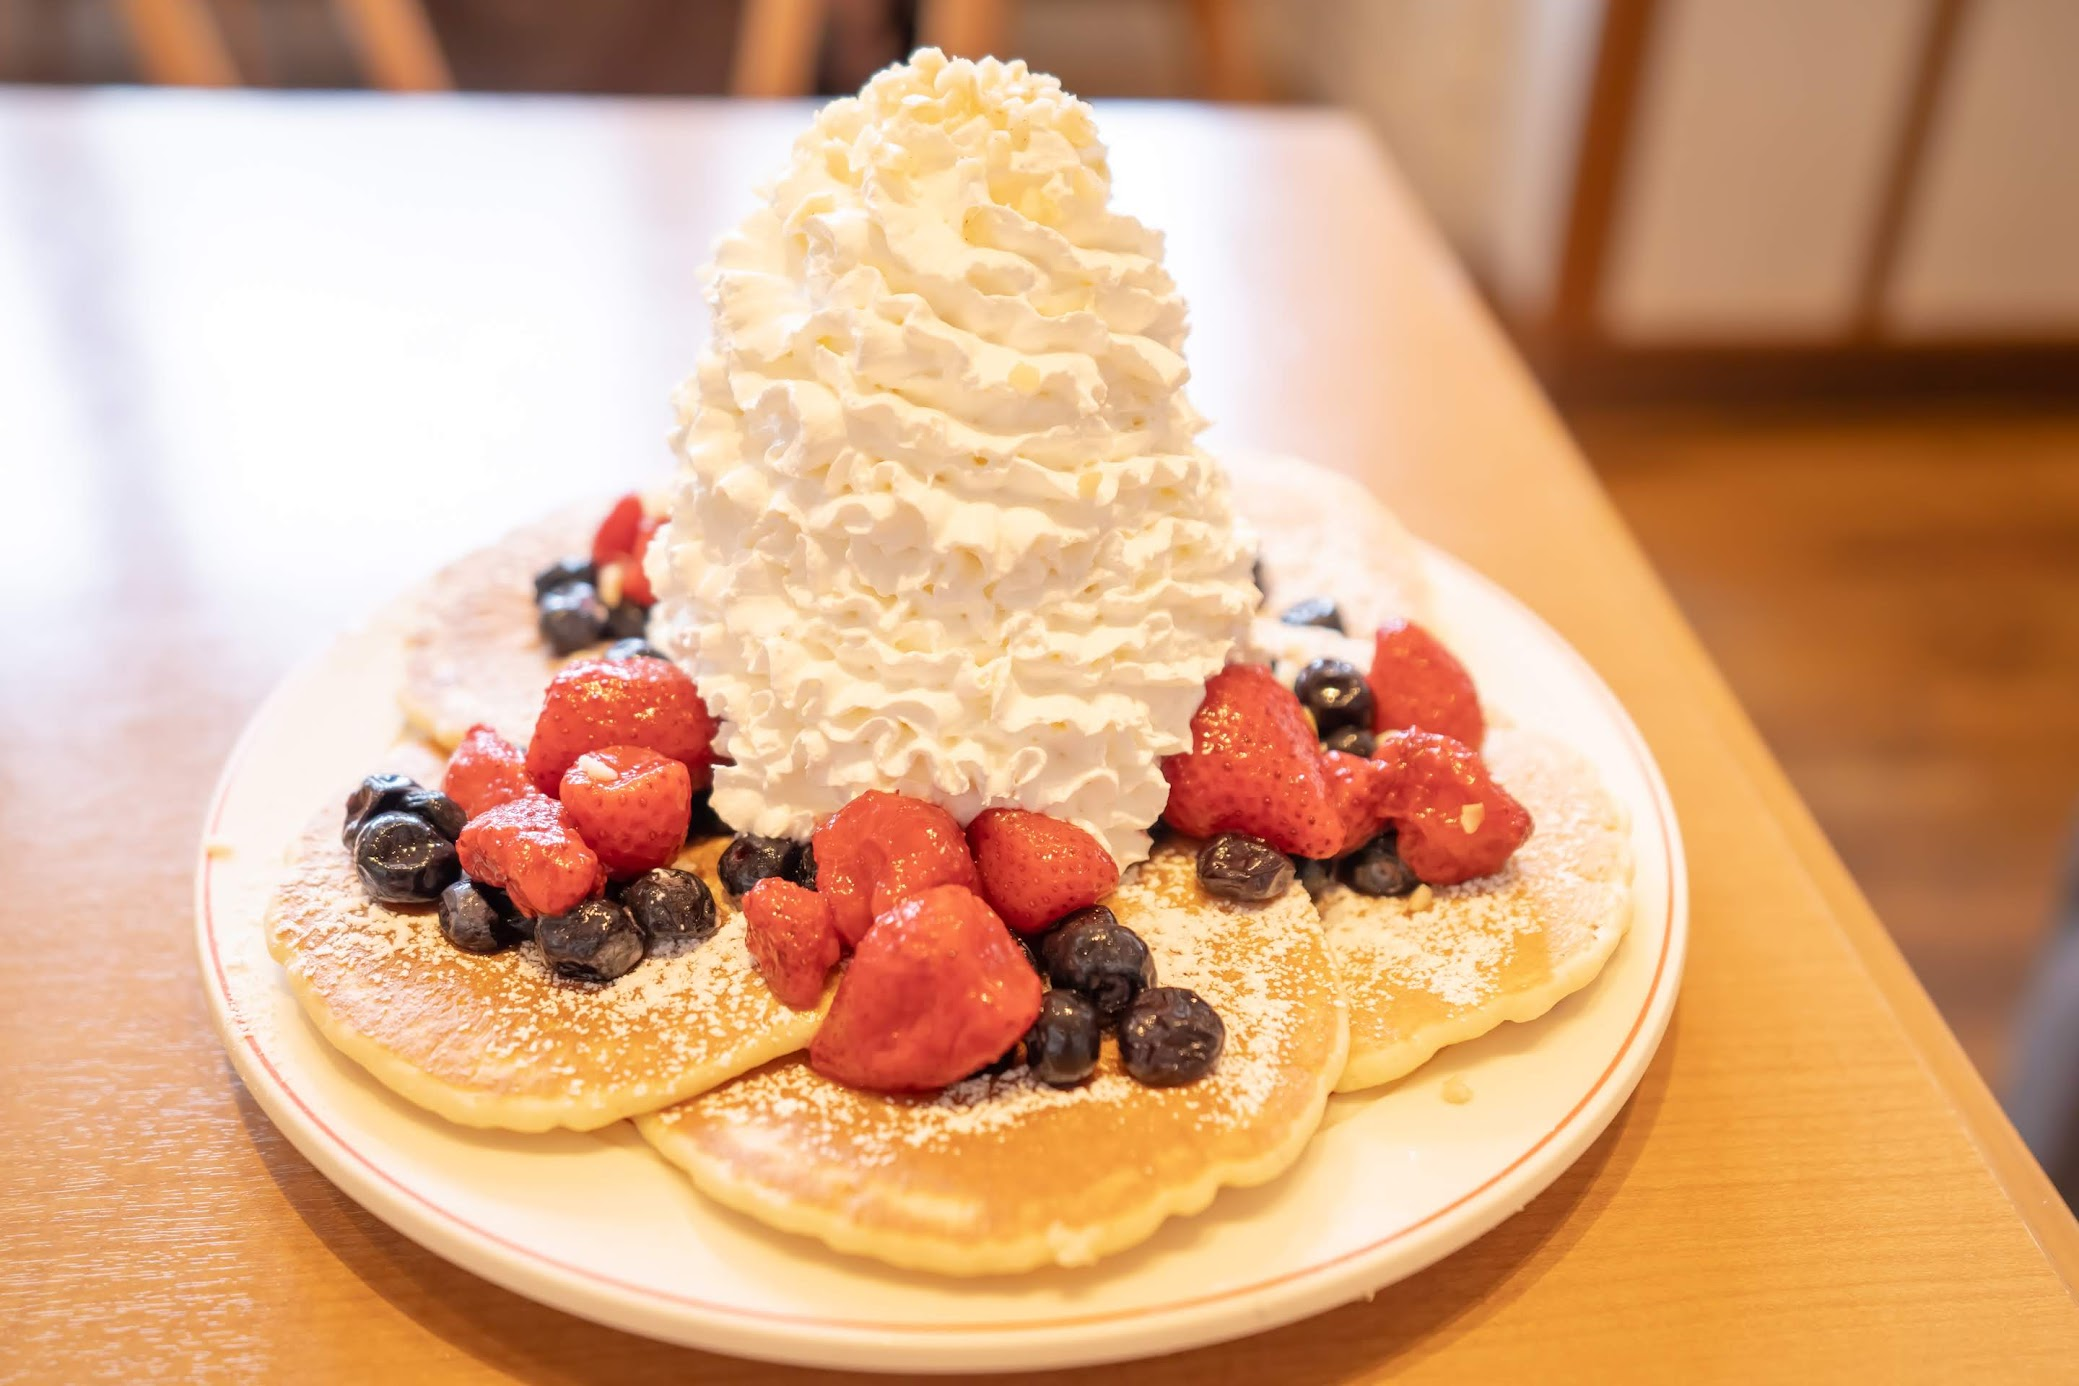 Eggs 'n Things パンケーキ